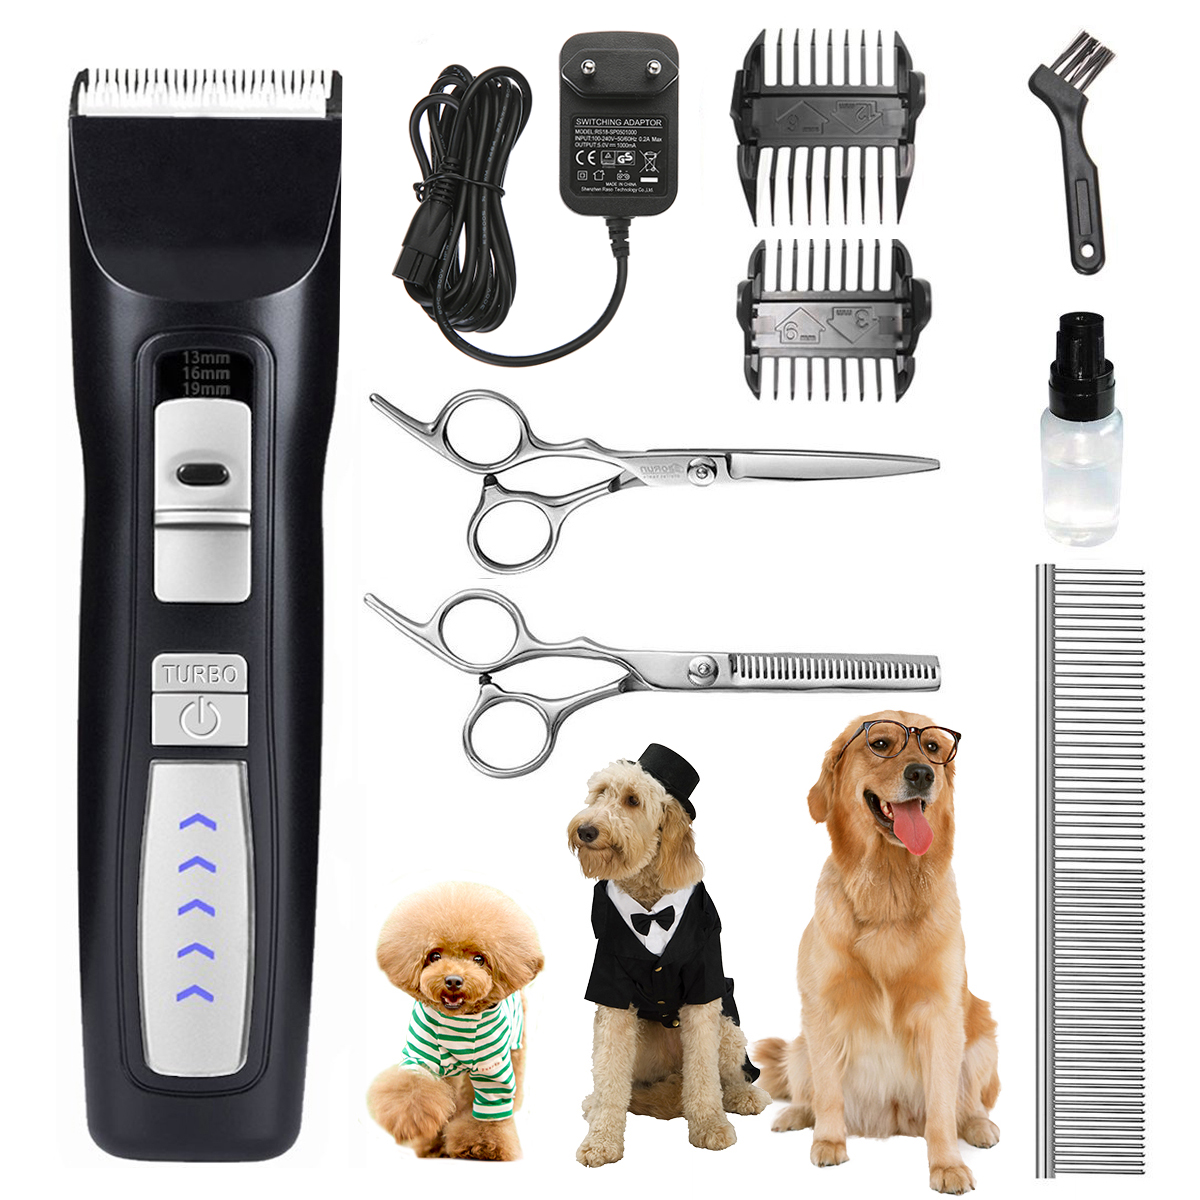 Pet Grooming Clipper 3 Speed Pet Electric Clippers Professional Dog Trimmer Cordless Pet Hair Trimmers Rechargeable Low Noise LED Heavy Duty Dog Shaver for Cats Horse Dog Clipper